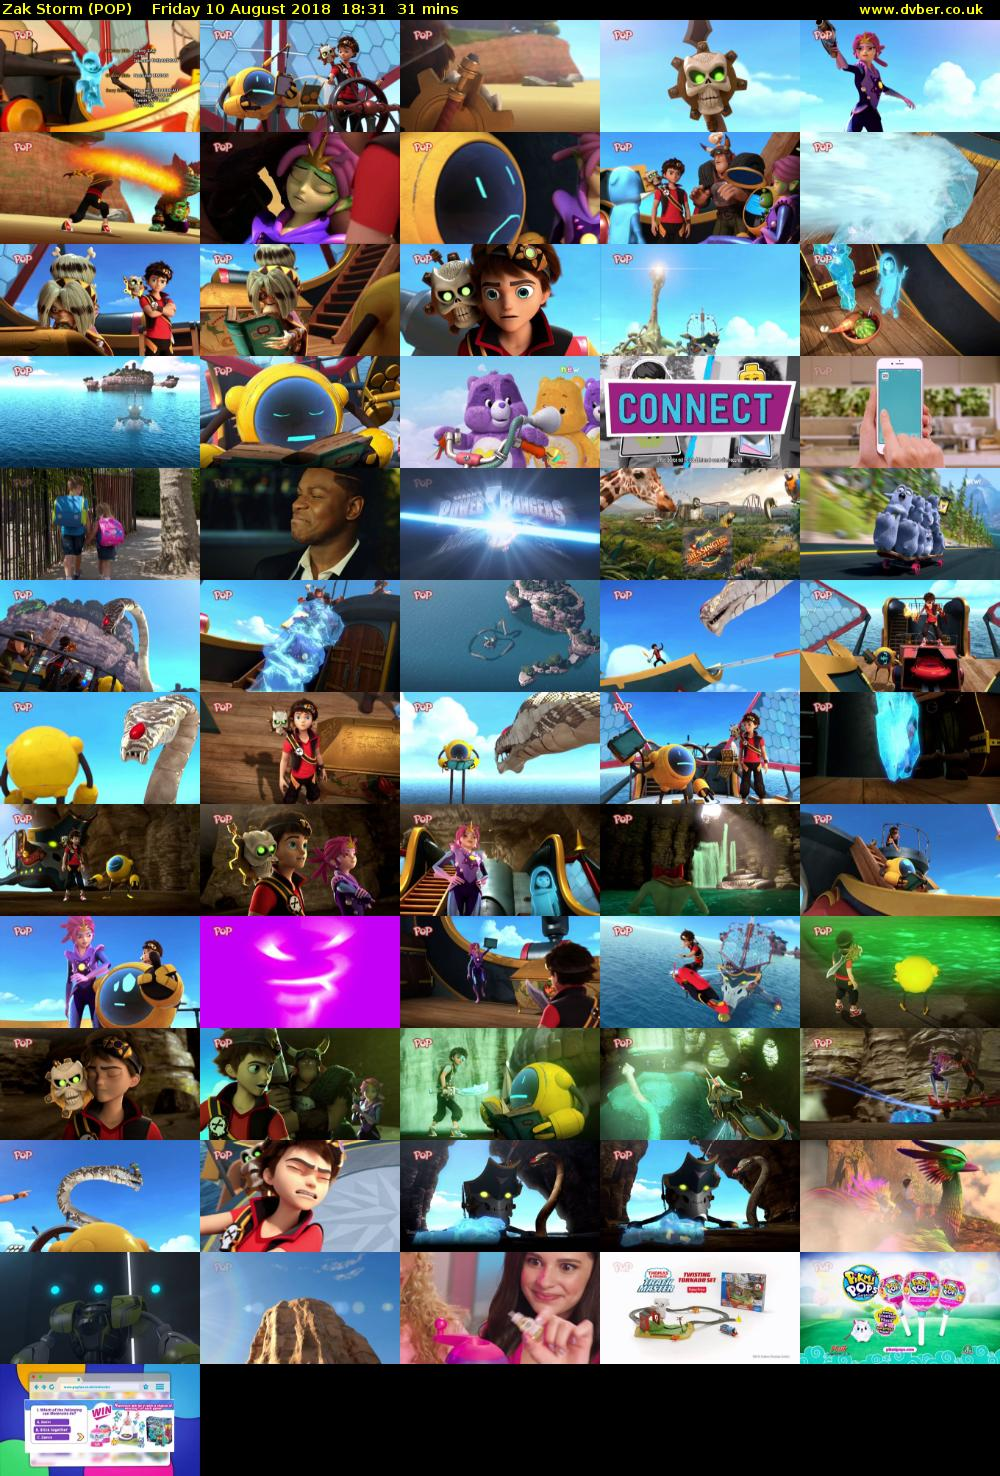 Zak Storm (POP) Friday 10 August 2018 18:31 - 19:02